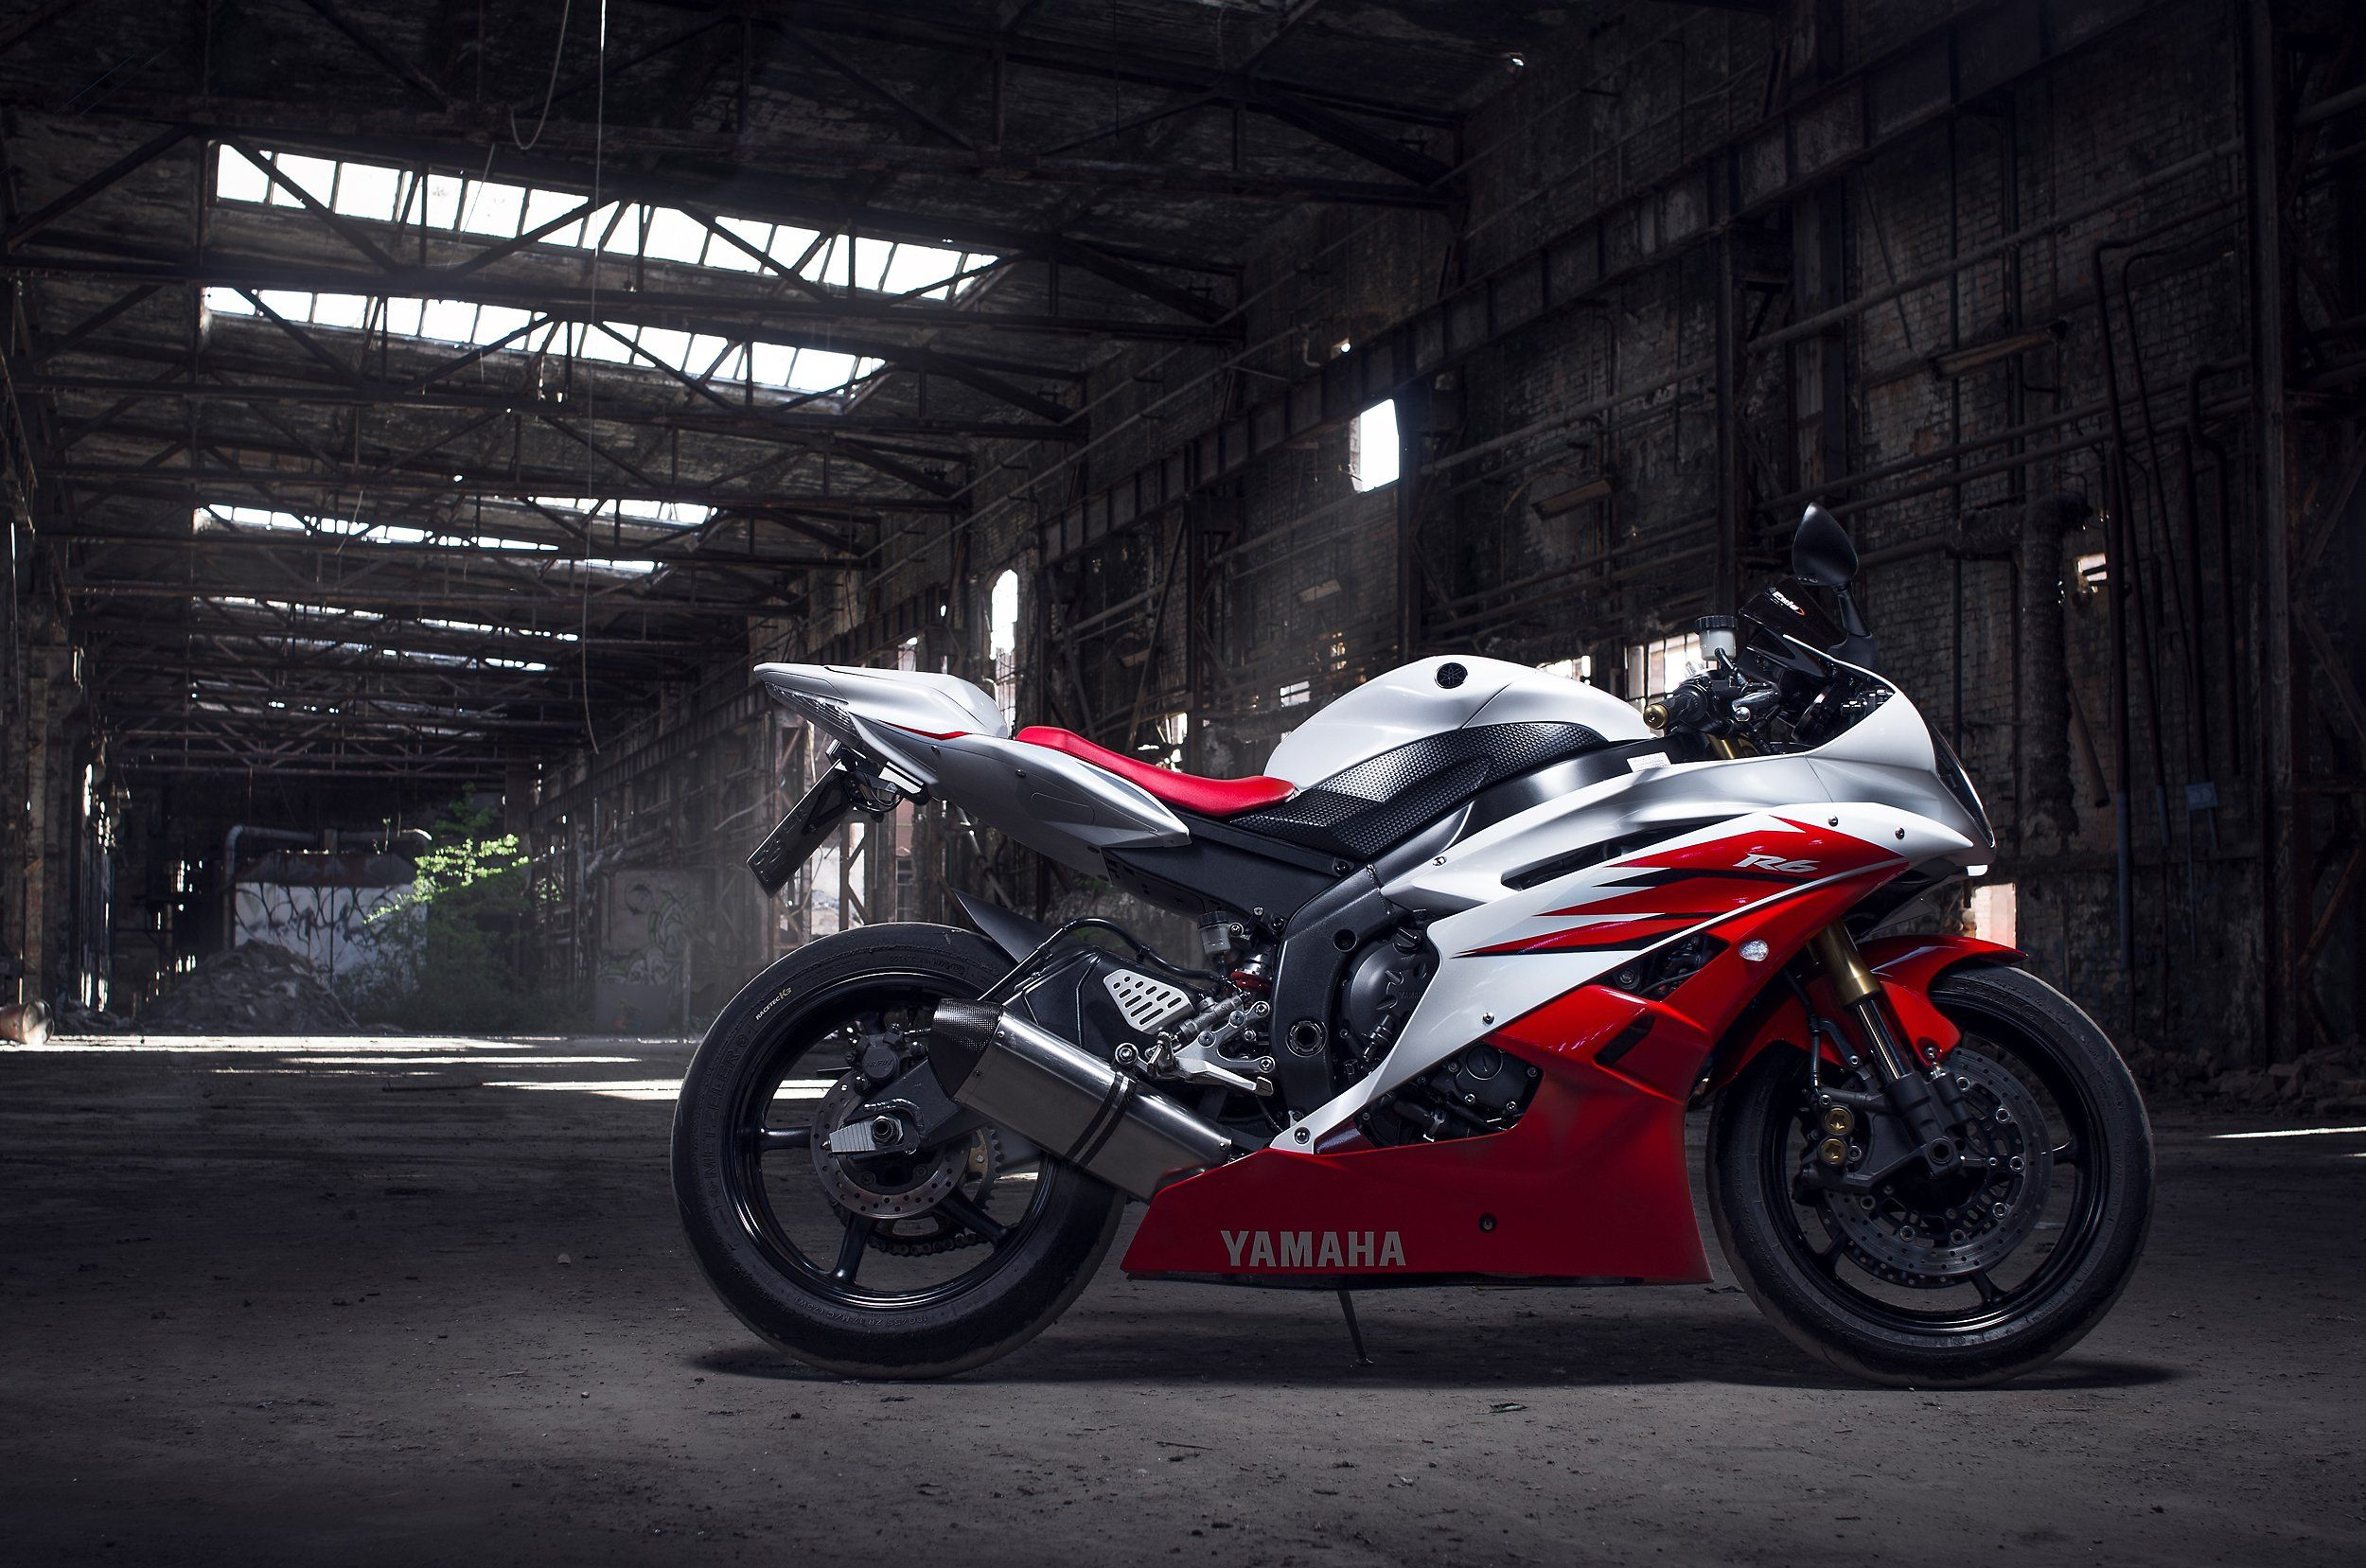 motorcycles desktop wallpapers yamaha yzf-r6 - 2015 | adorable